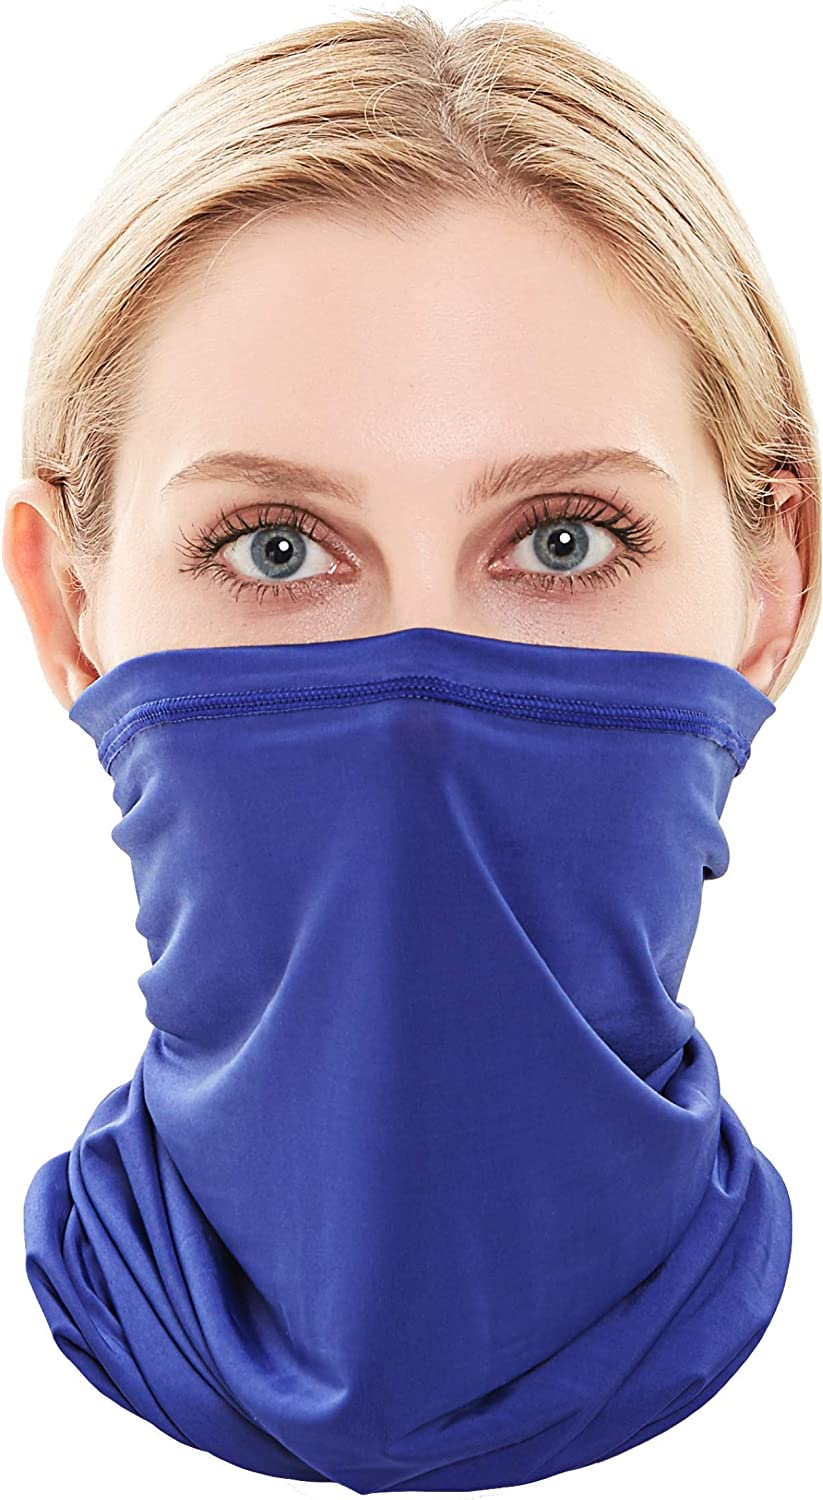 Self Pro Summer Face Mask Protection from Dust, UV & Aerosols - Washable Neck Gaiter Balaclava, Bandana Face Cover UPF50++